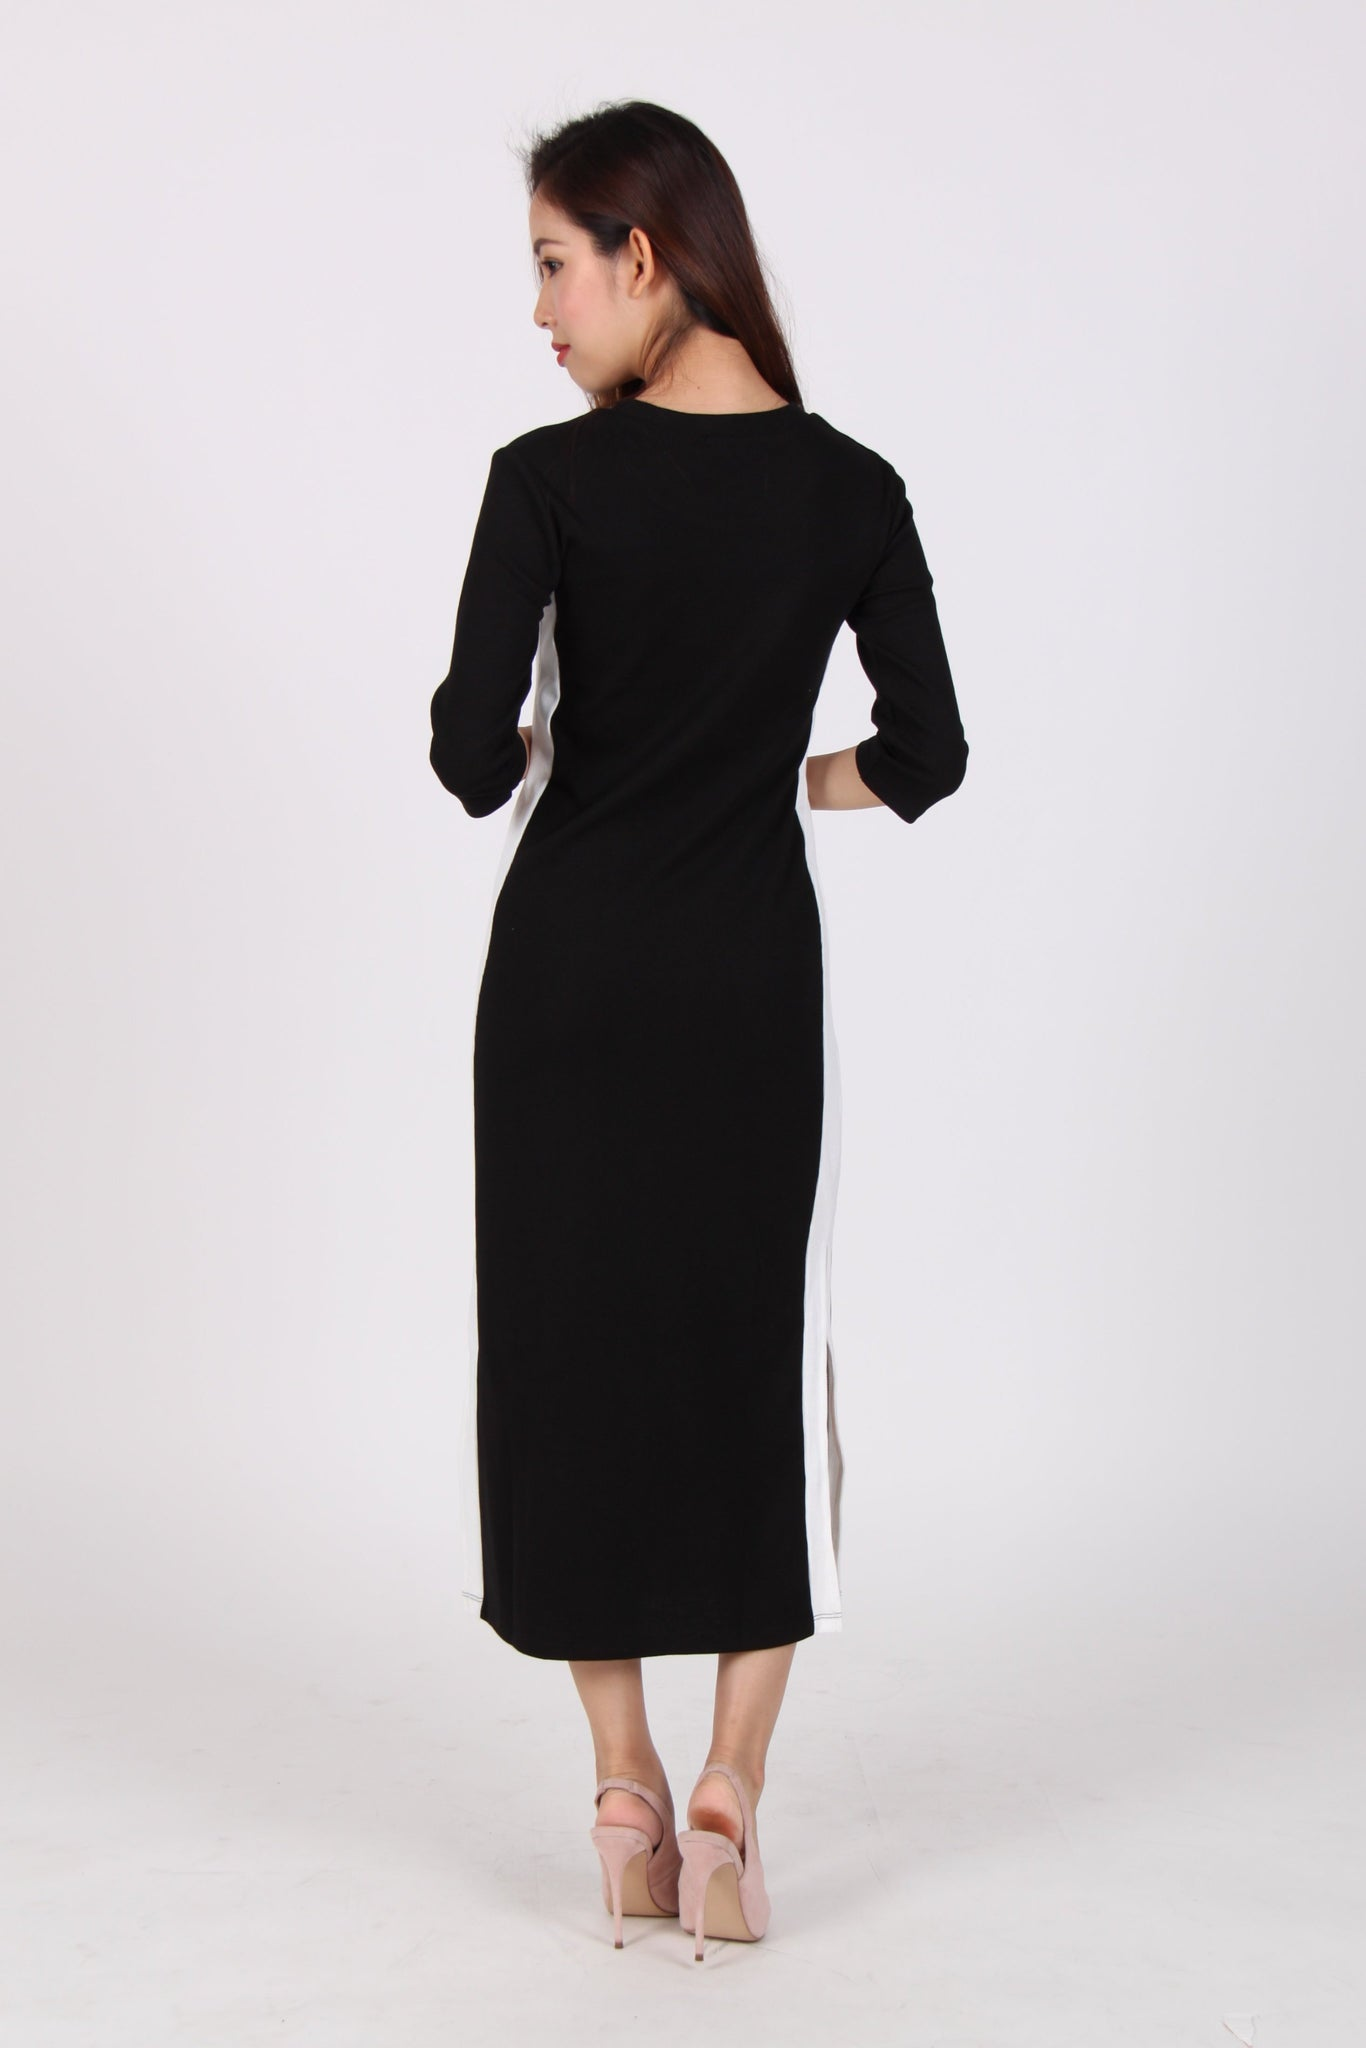 Contrast Quarter Sleeve Side Slit Midi Dress in Black